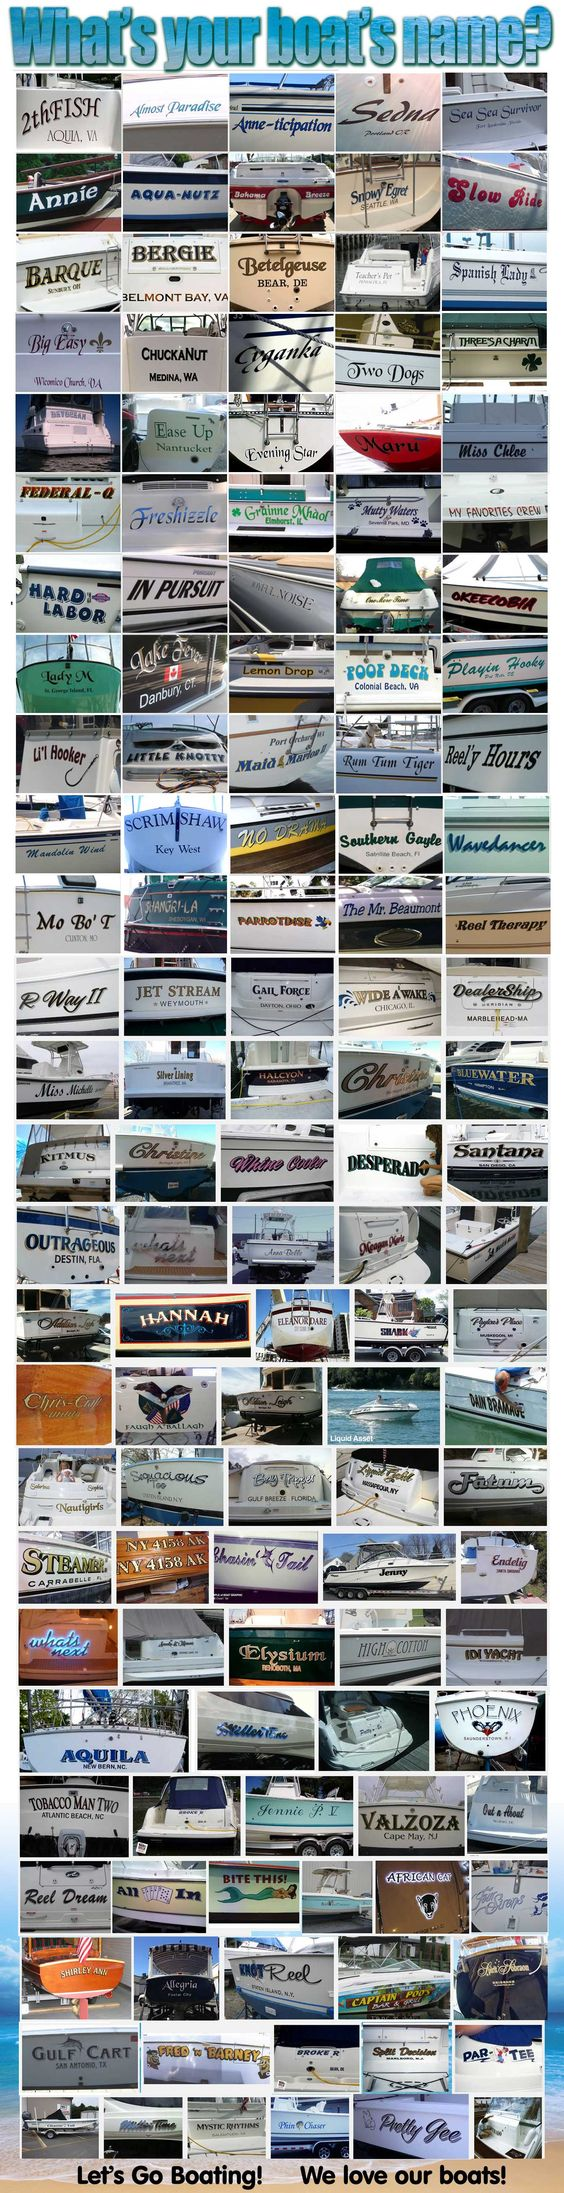 Boat Names?  We love our boats, and we love seeing all the creative names, styles, and lettering!  #boats #boatnames